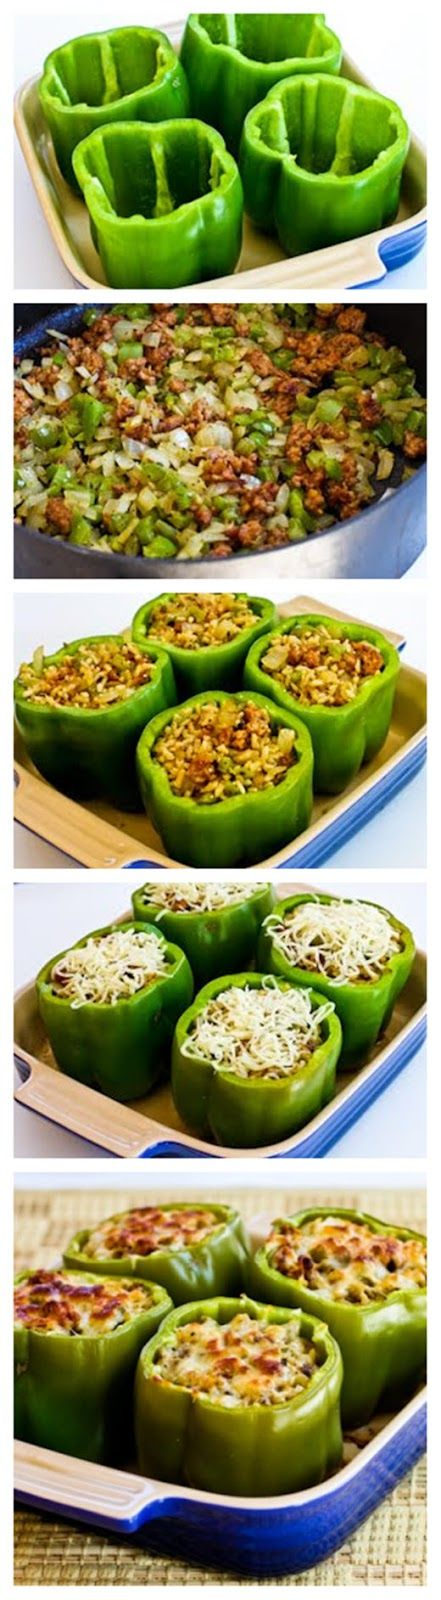 Turkey-Stuffed Bell Peppers